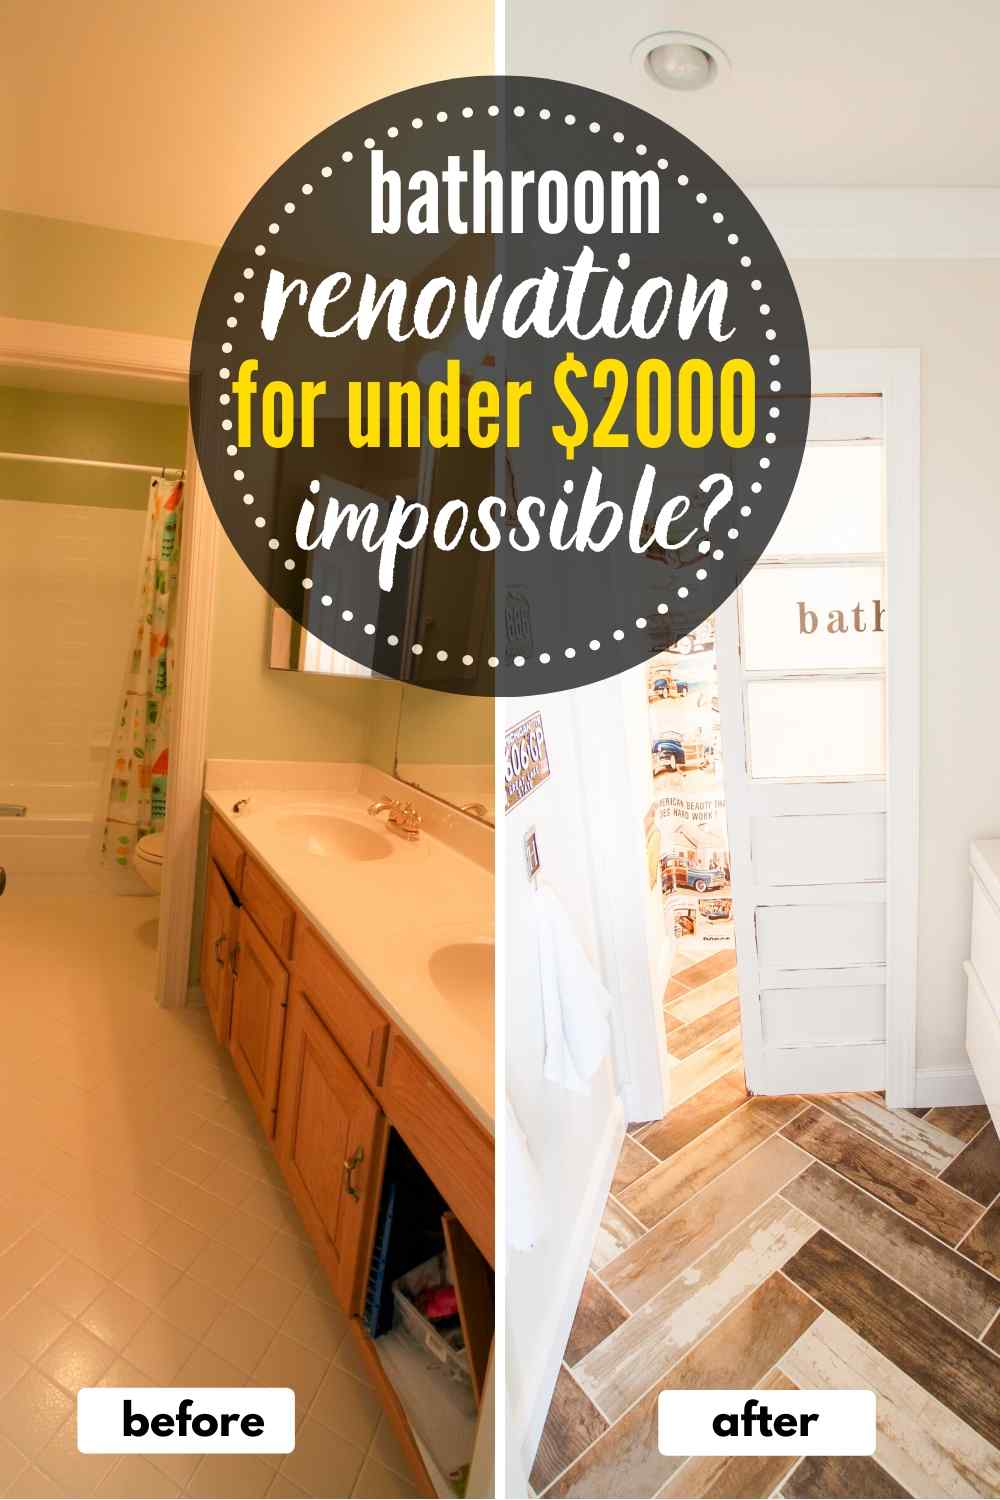 A Budget of $1800? How Far Could You Get For A DIY Bathroom Renovation?